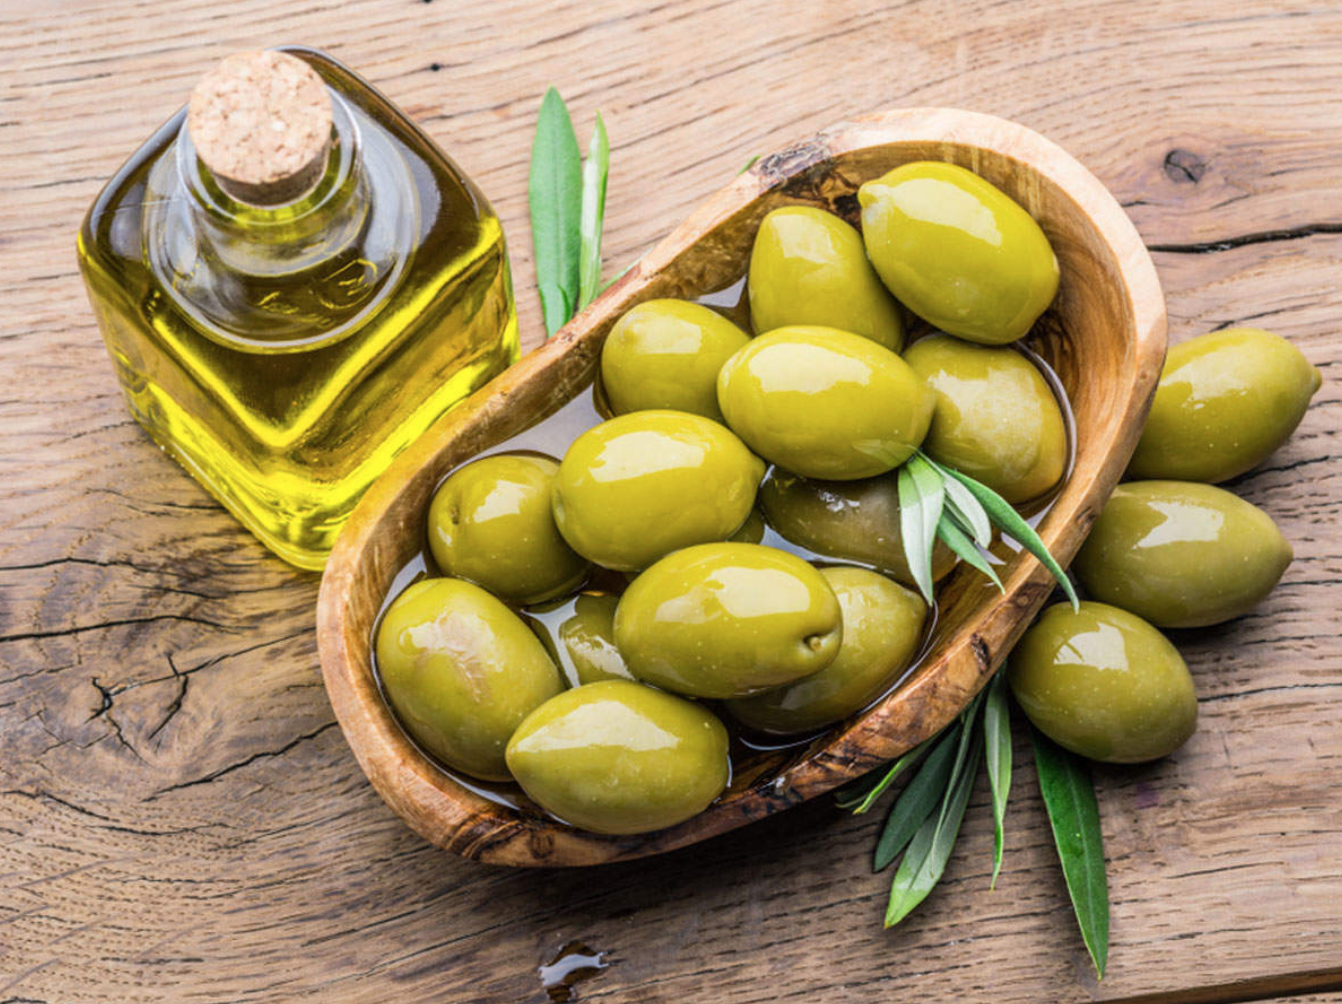 olives-in-boat-with-olive-oil-photo.png